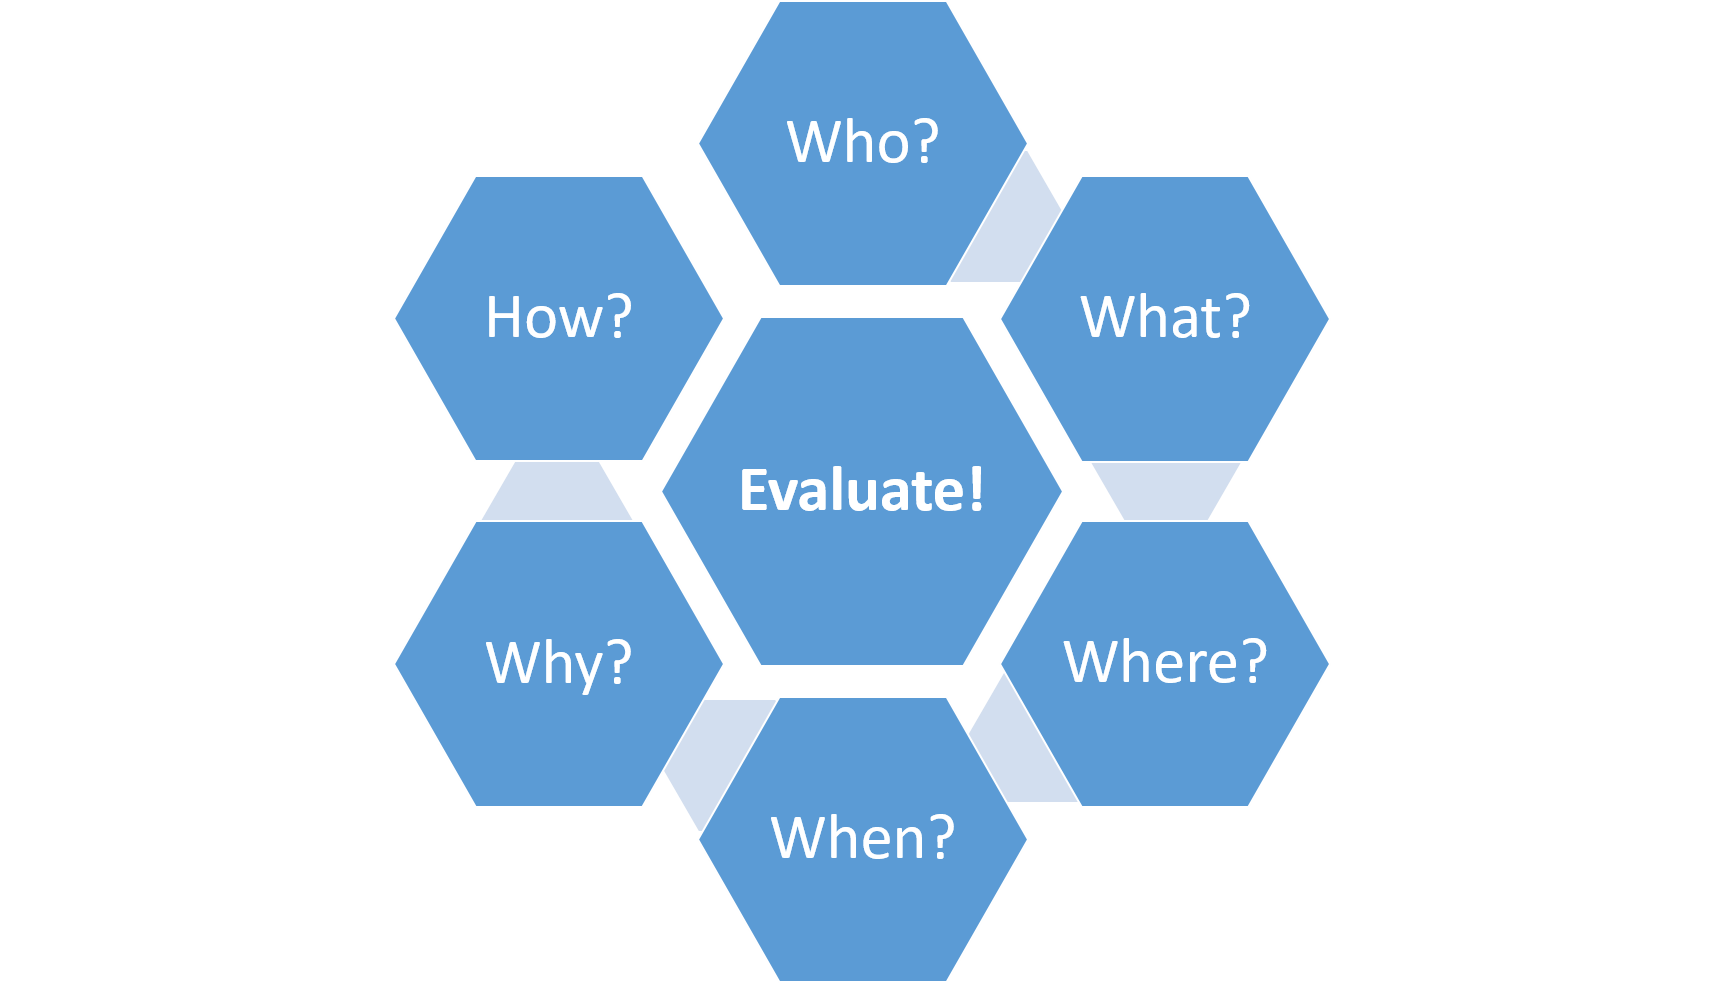 Questions for evaluating information - who, what, where, when, why and how?